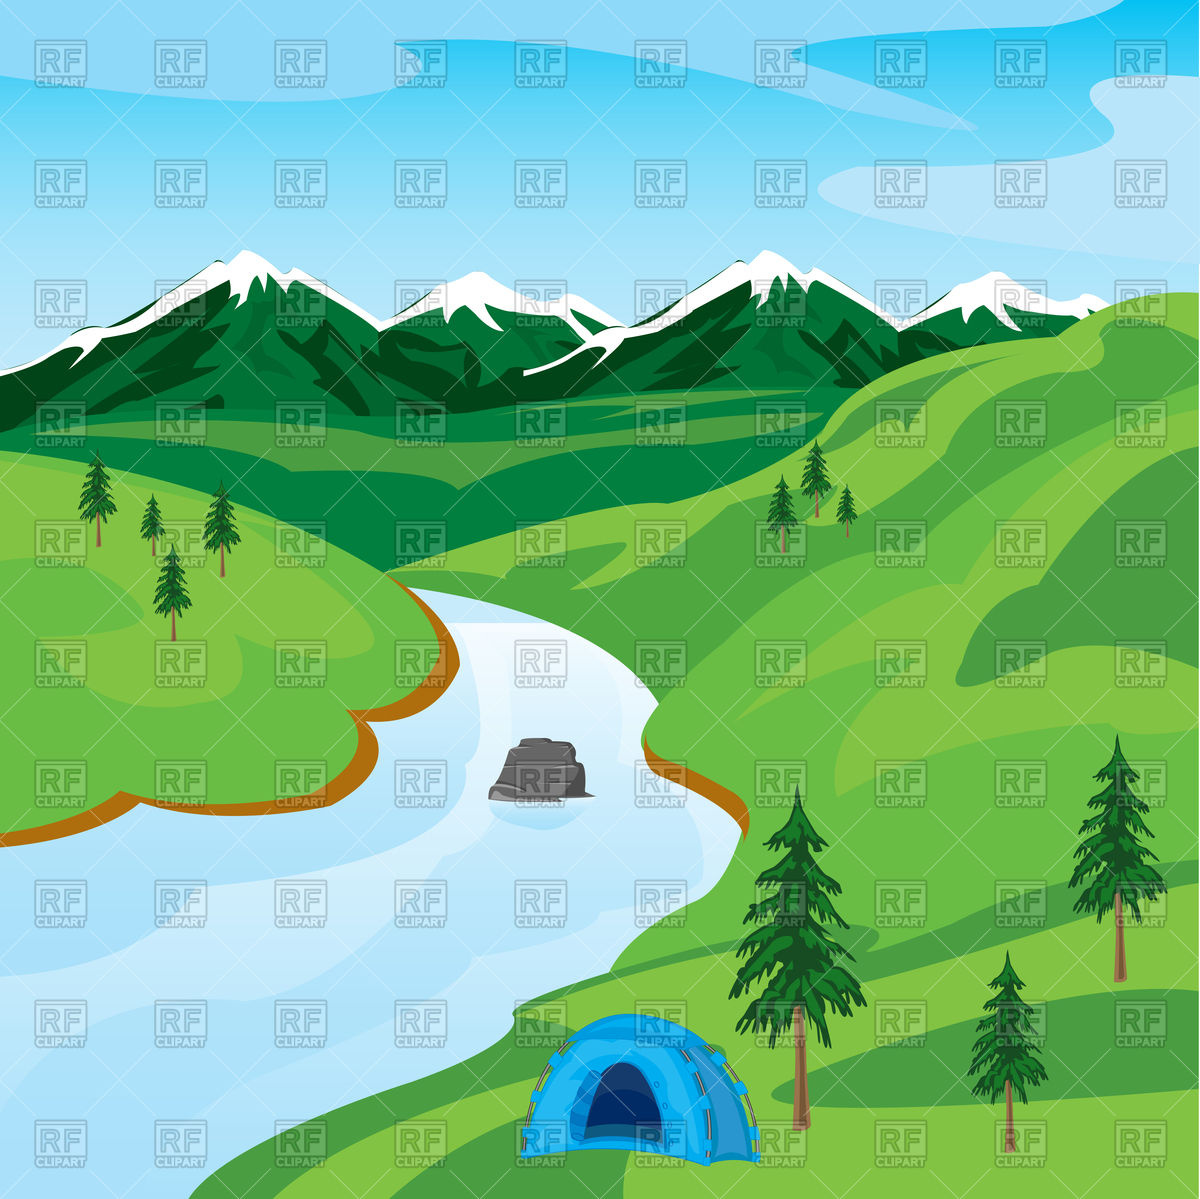 River clipart #8, Download drawings